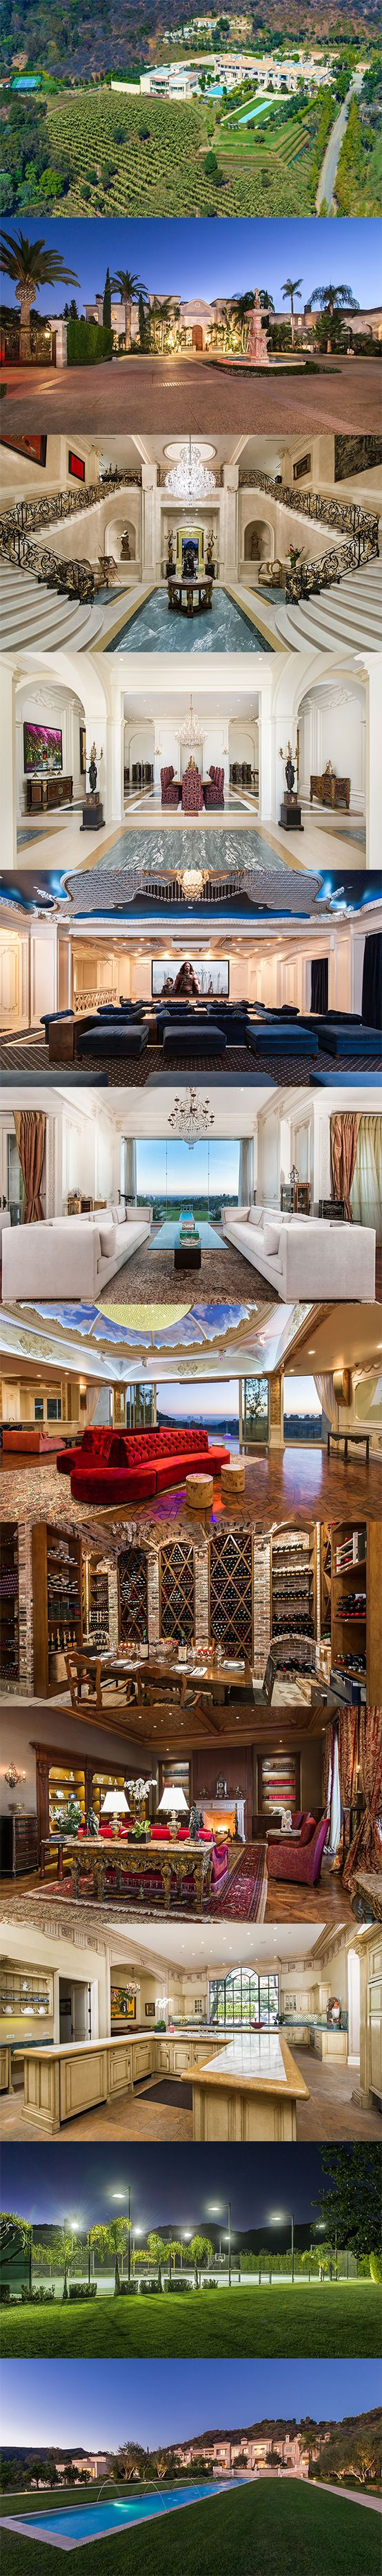 This $149 million, 25-Acre Beverly Hills Estate Can Host 1,000 People - Take a look and you will Truly be amazed